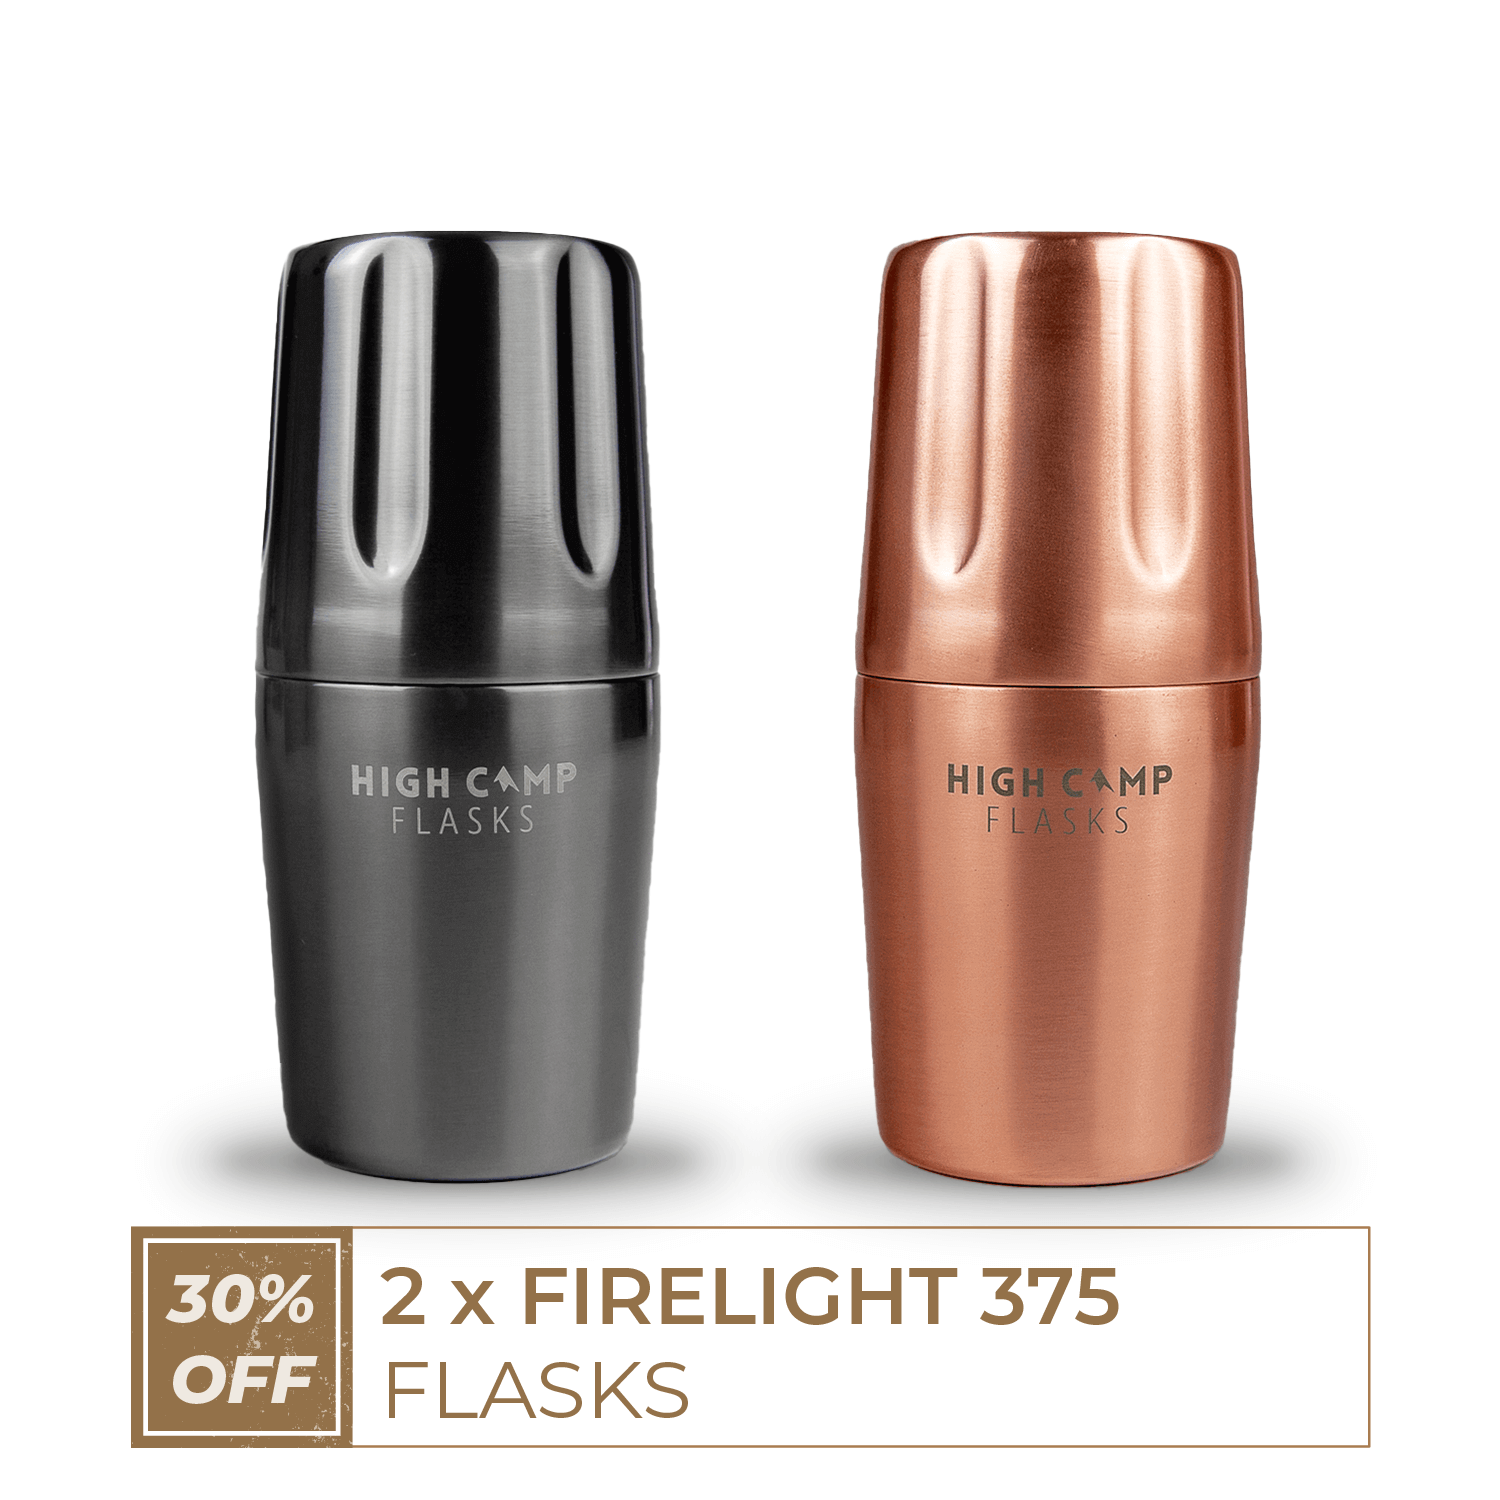 1+1 Firelight 375 Bundle - Save 30%